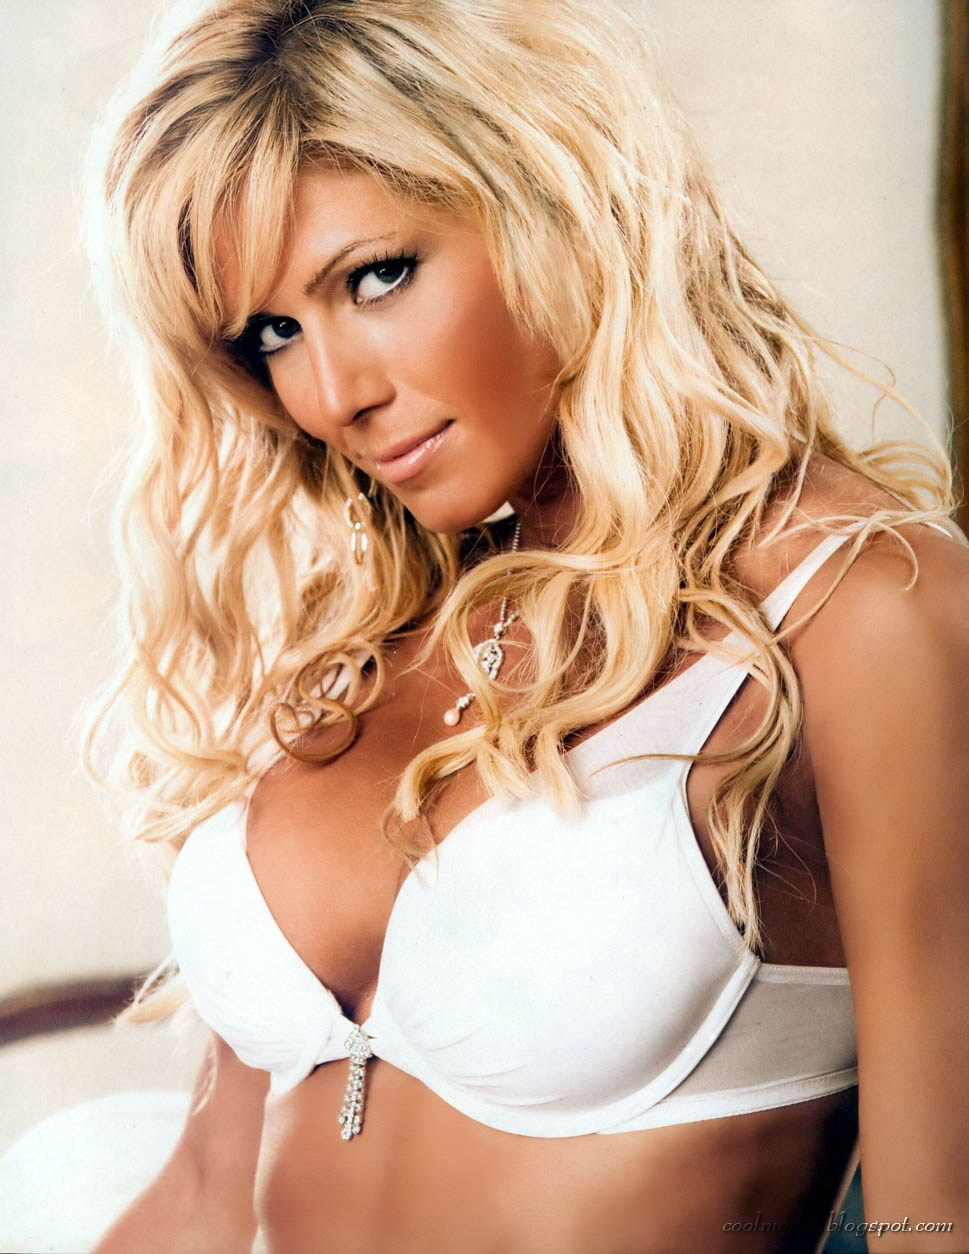 Who is the hottest diva in wwe history poll results wwe for Hottest wwe diva